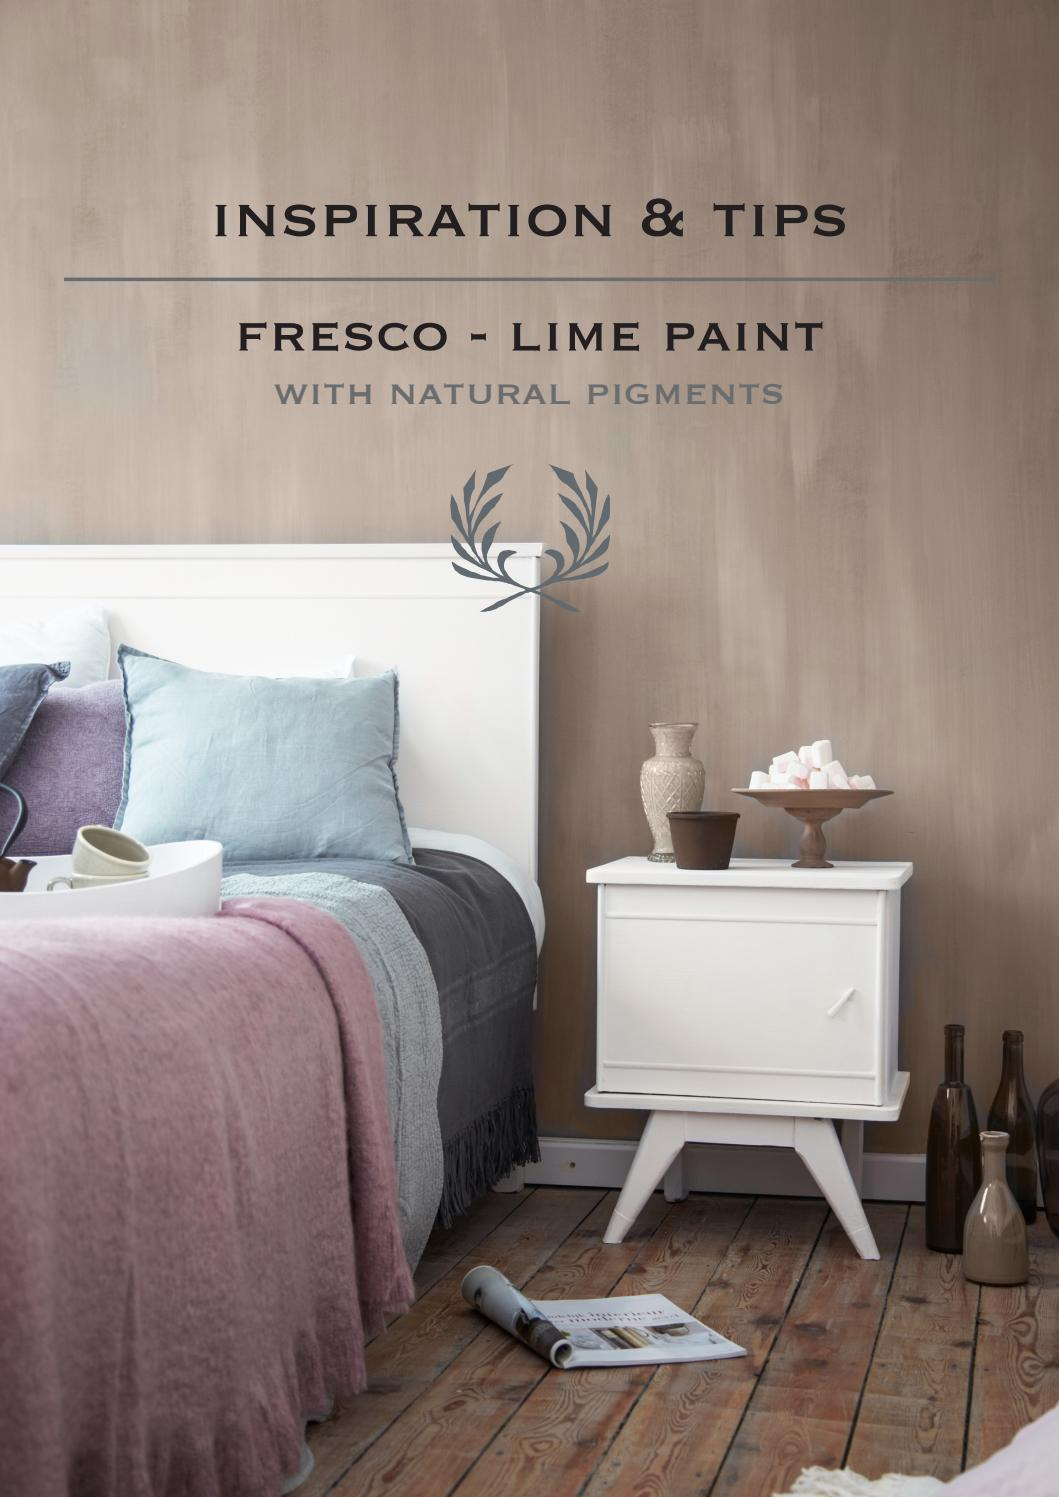 Fresco Lime paint inspiration  tips by Pure  Original